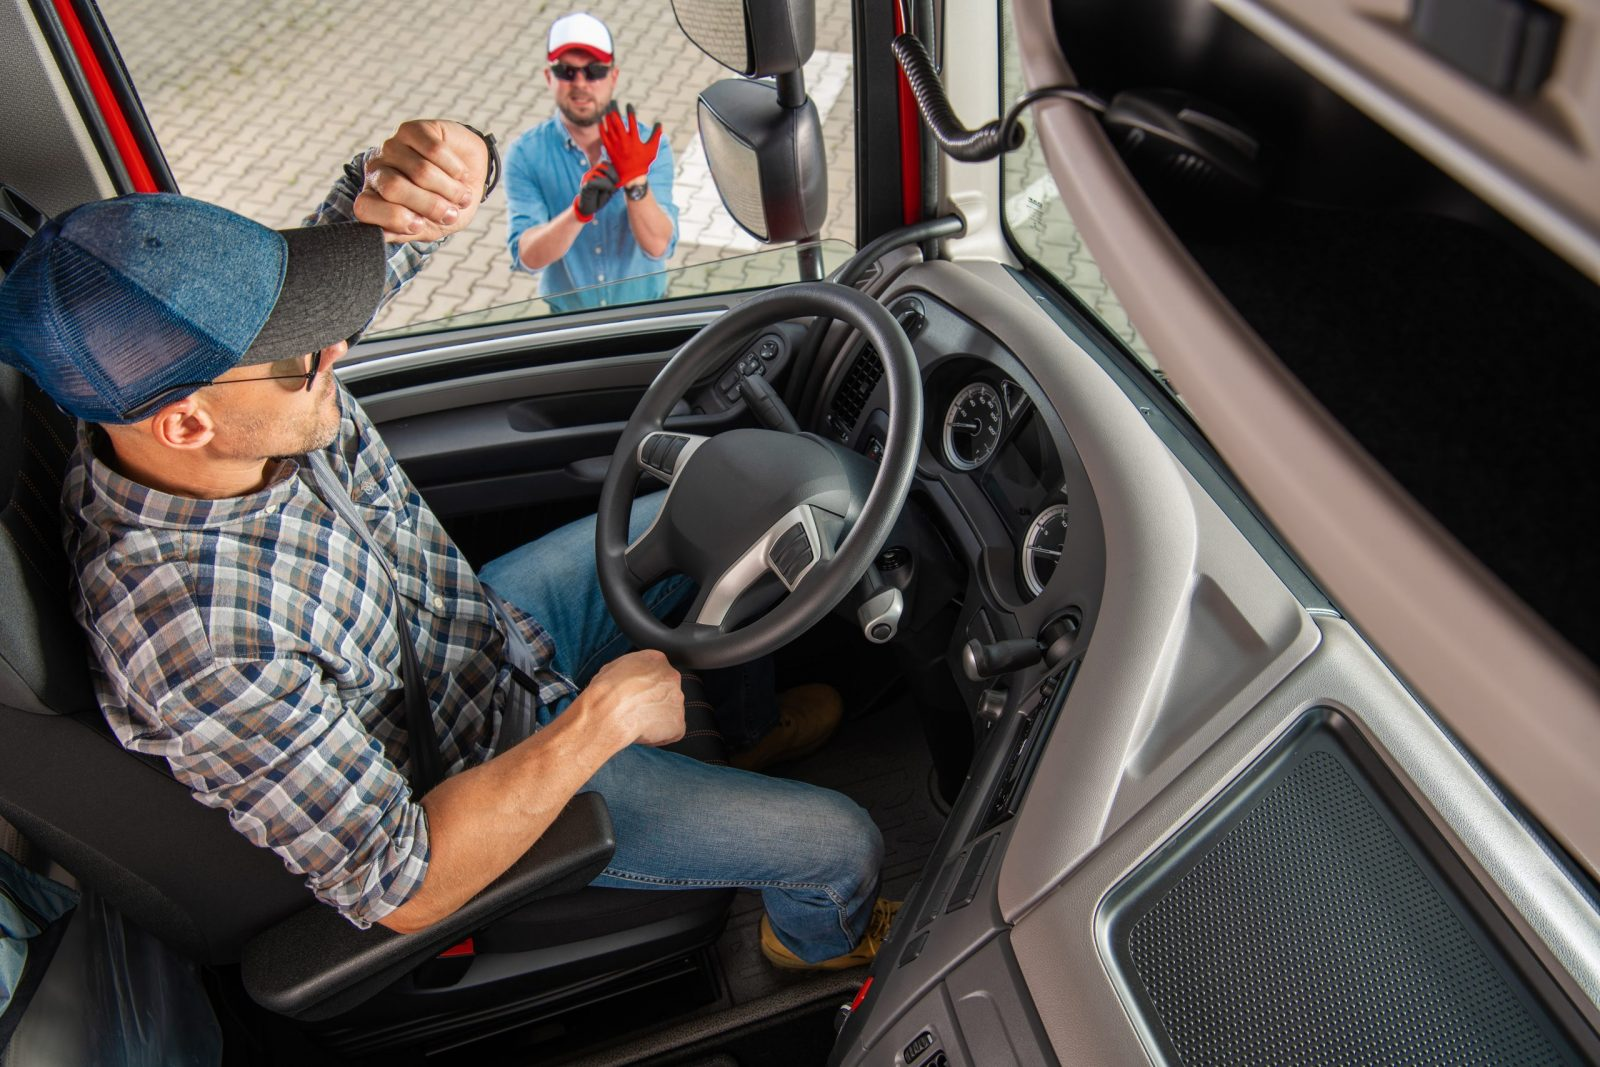 Read more about the article Our CDL Training Program Offers Access to Immediate Local Trucking Job Opportunities